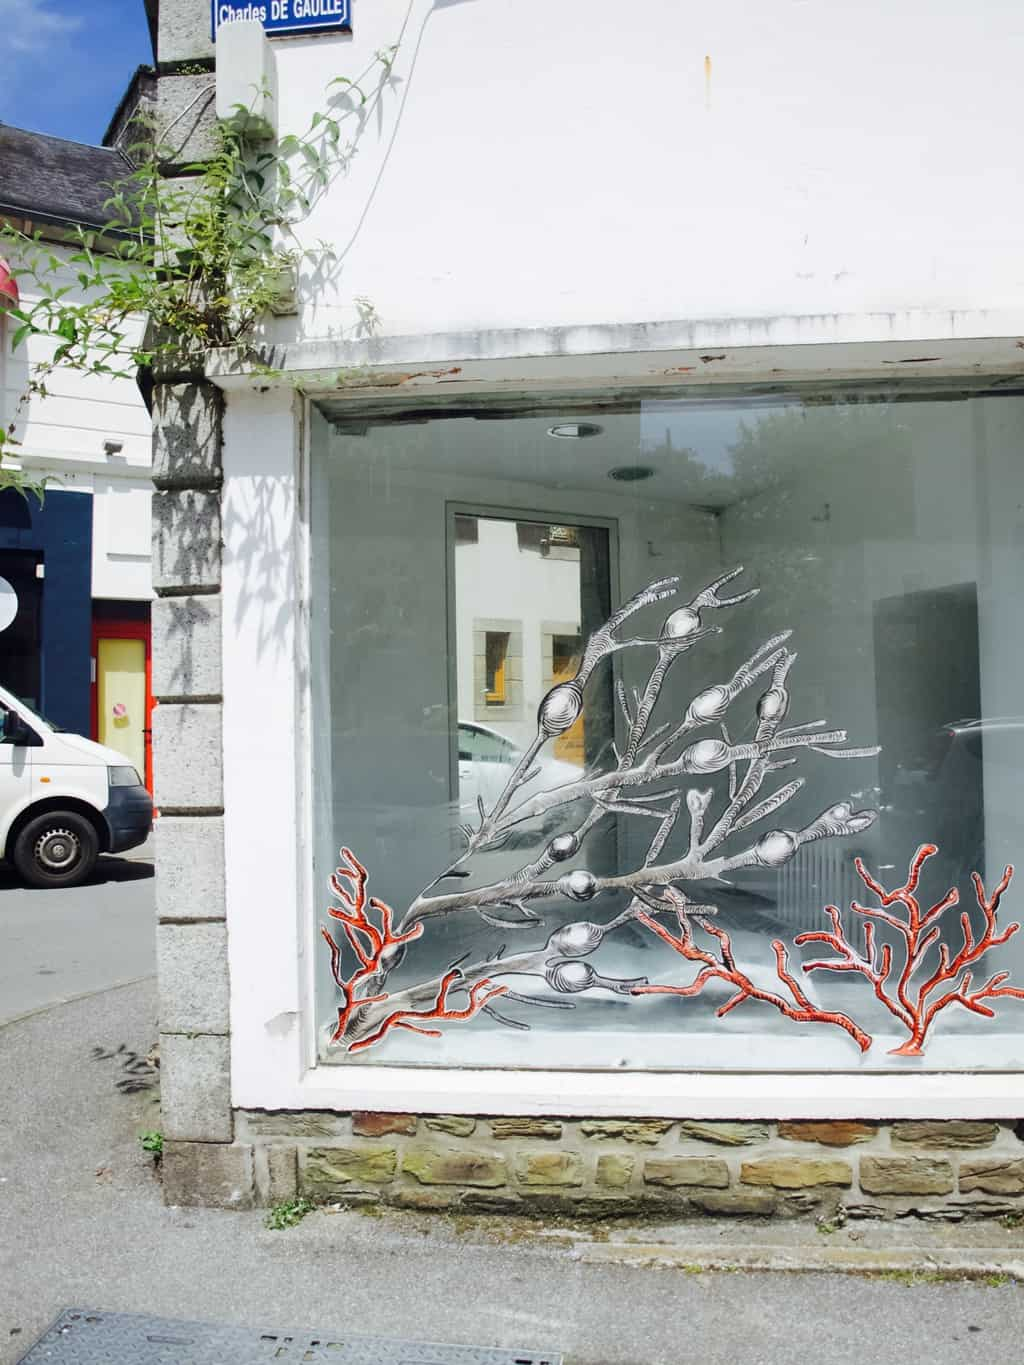 Watercolour challenge: underwater paintings inspired my mural walls in France